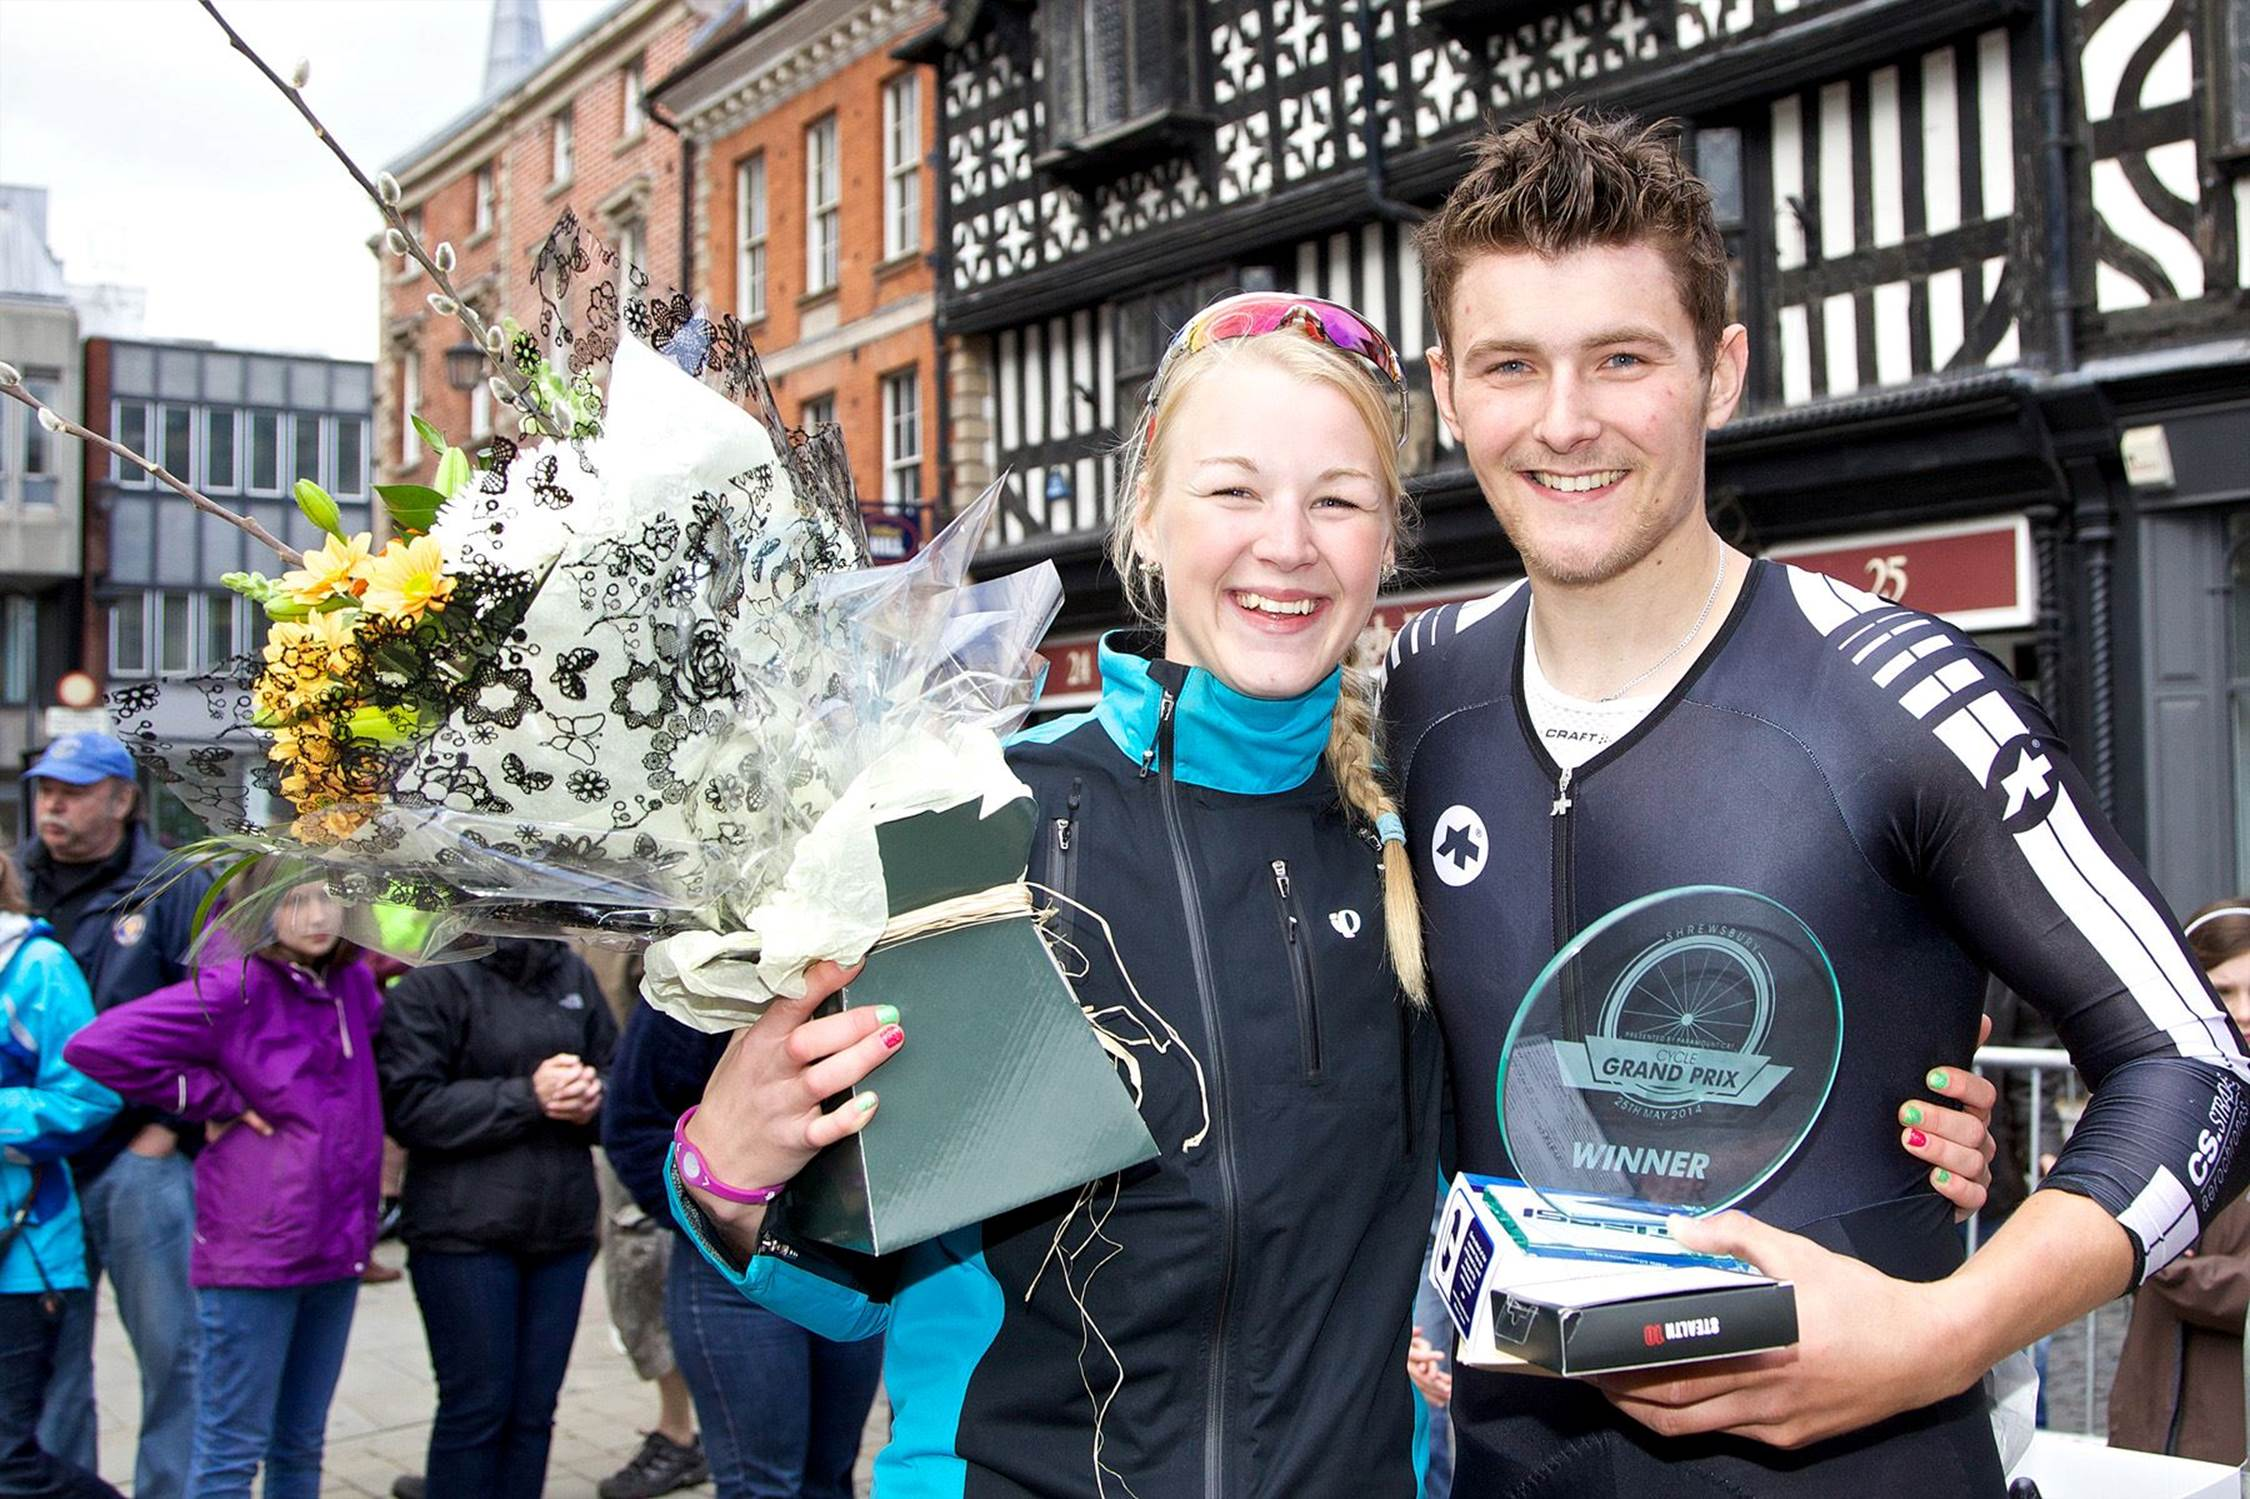 Ilkley's Brit Tate (20) and boyfriend Robert Watson (22) were both triumphant at the Shrewsbury Cycle Grand Prix held on Sunda